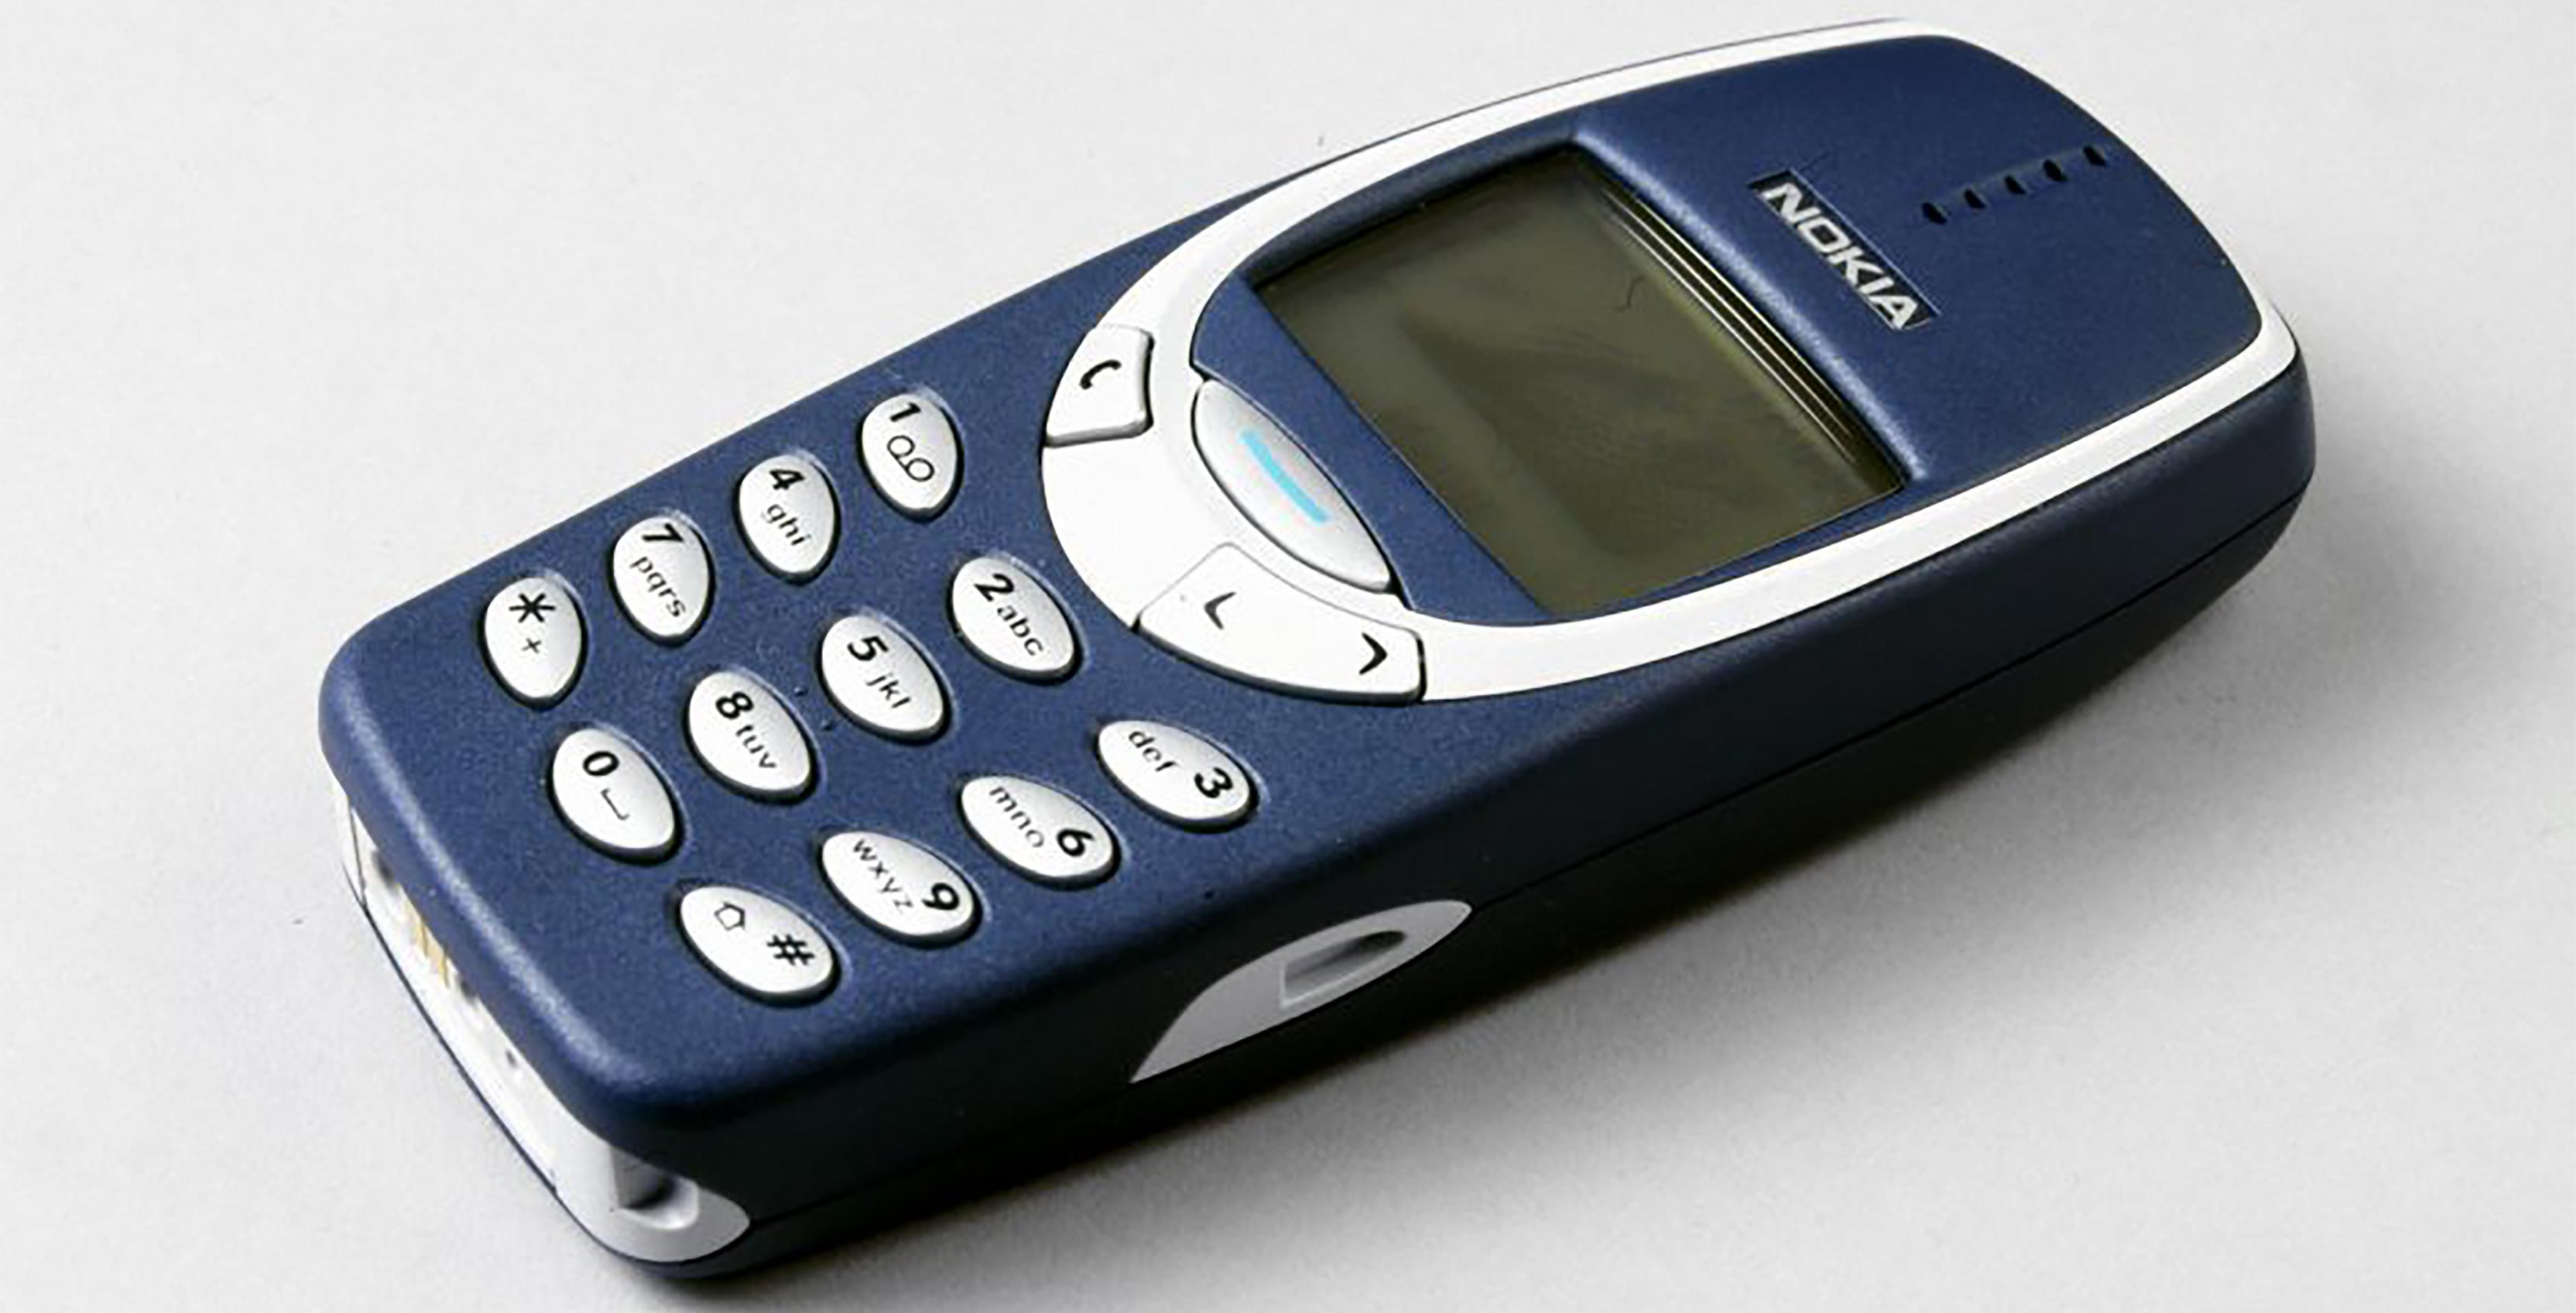 Nokia's 3310 brick phone